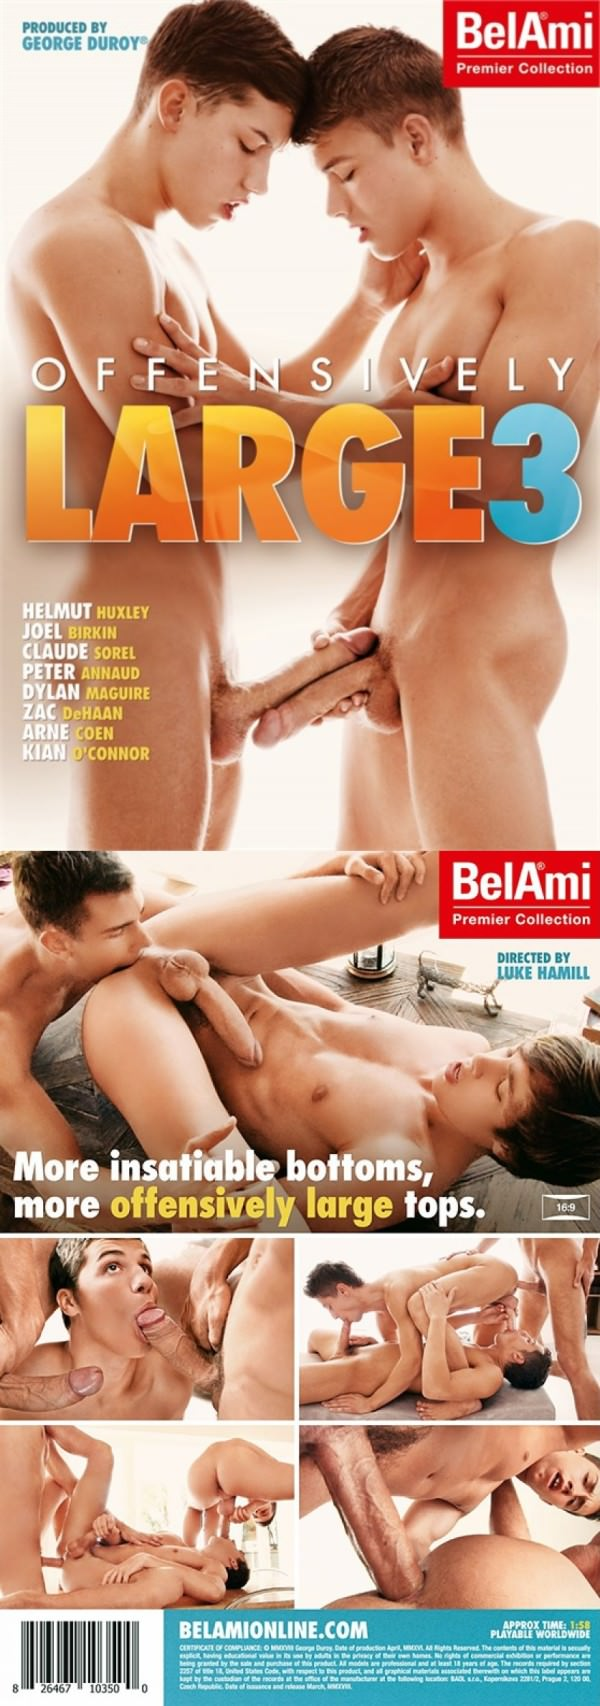 BelAmiOnline Offensively Large 3 DVD